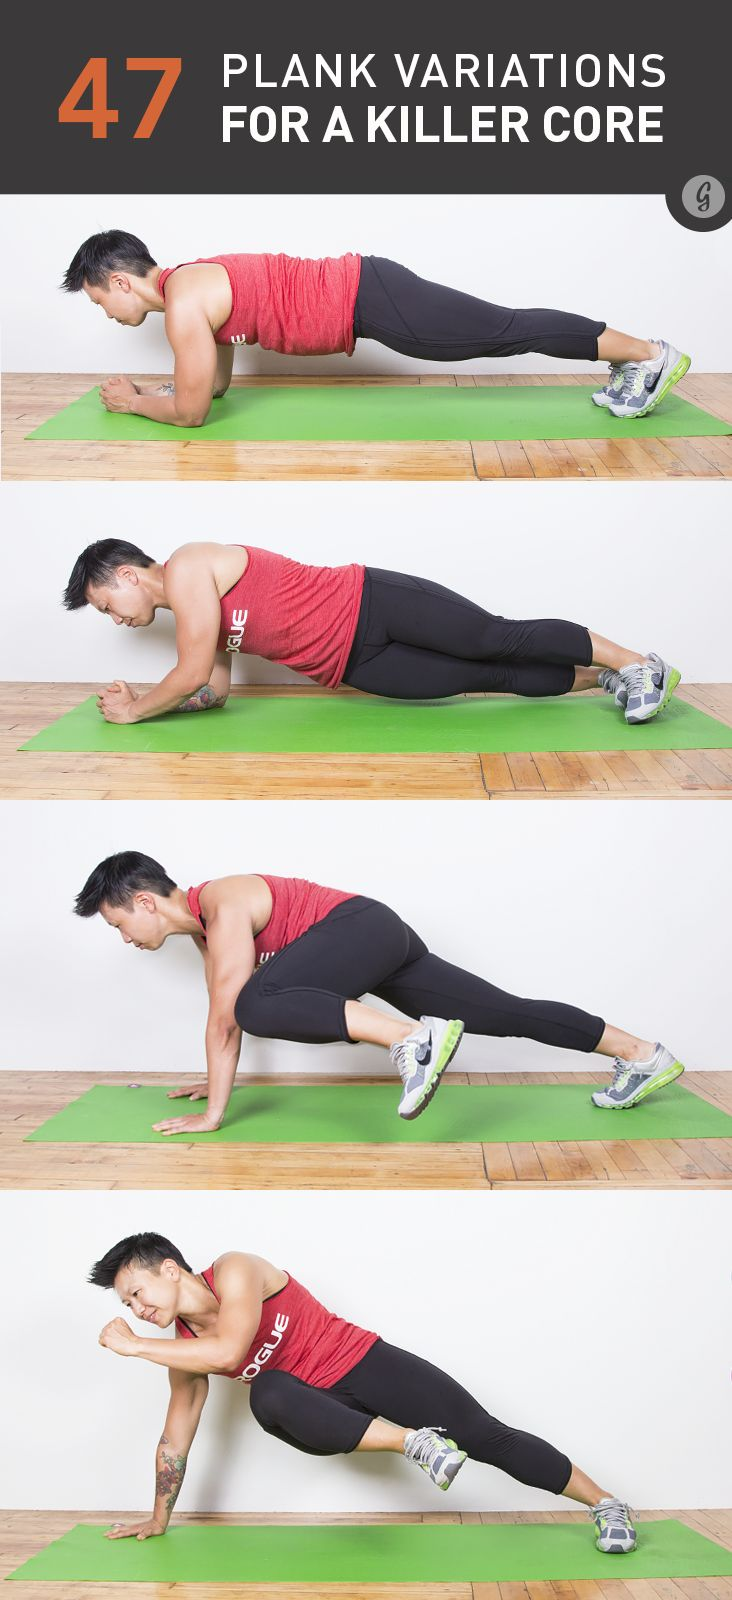 Planks are the MacGyver of bodyweight movements: They're super tough and great for almost any situation.